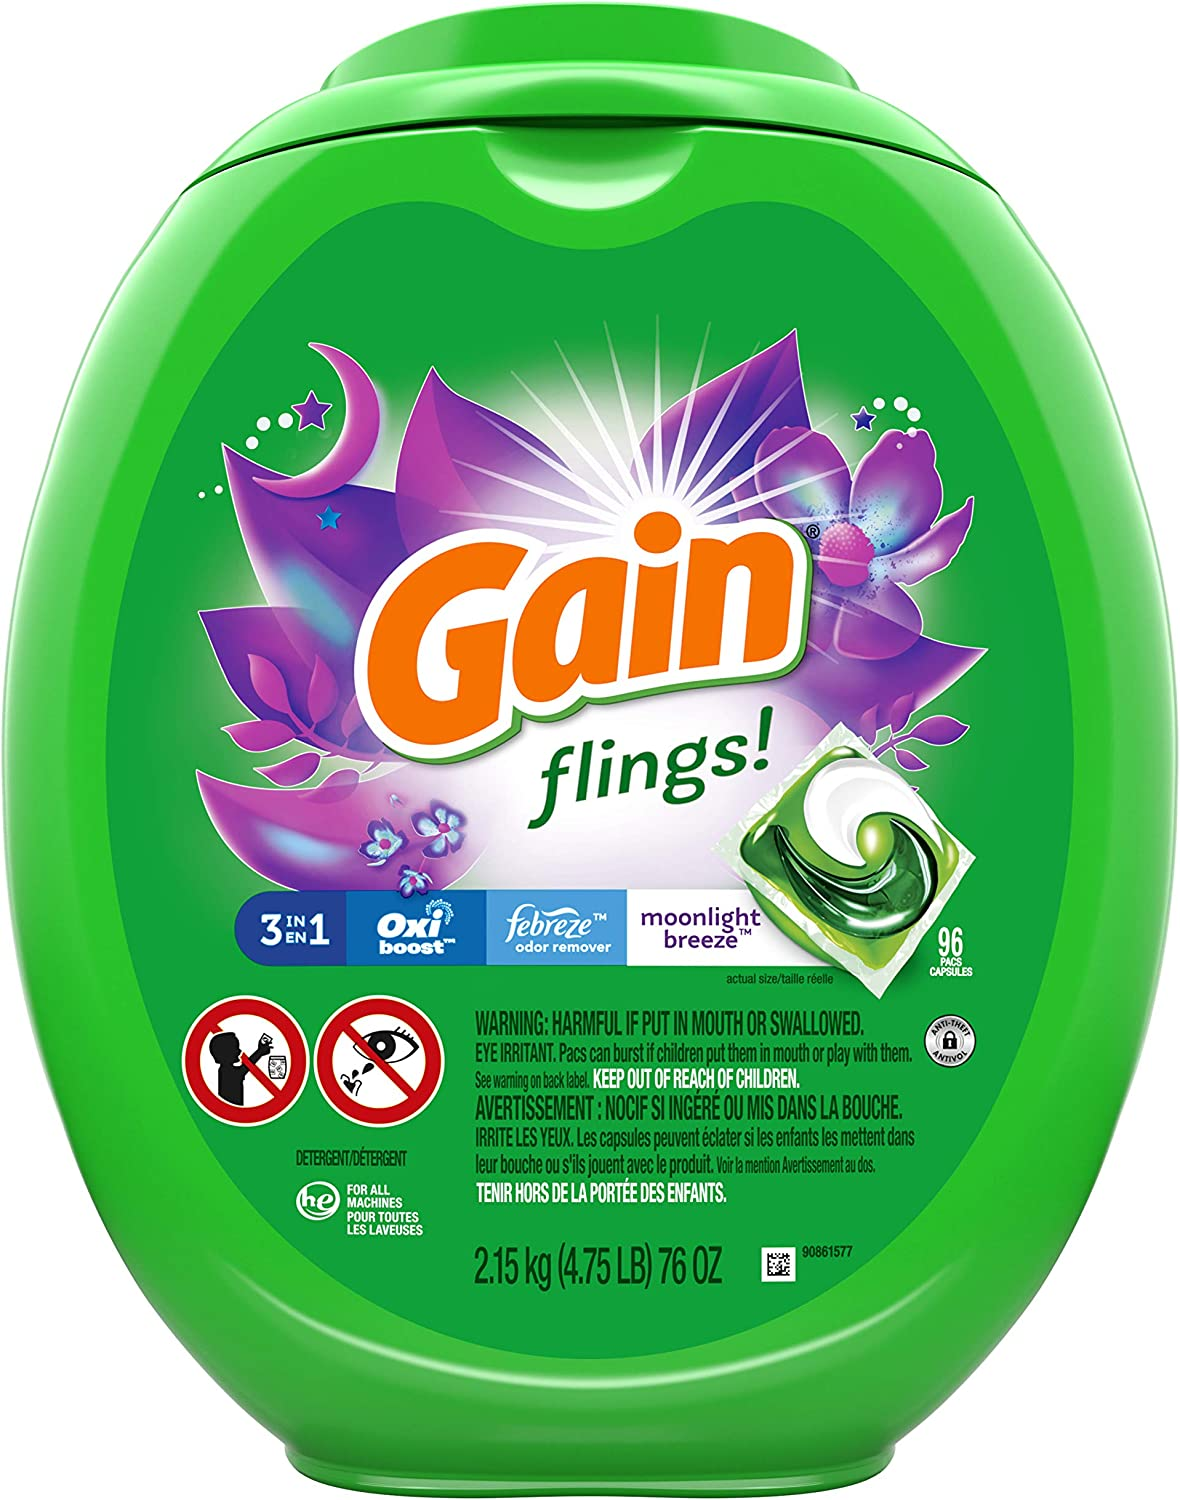 Gain flings! Laundry Detergent Soap Pacs, High Efficiency (HE), Moonlight Breeze Scent, 96 Count : Health & Household